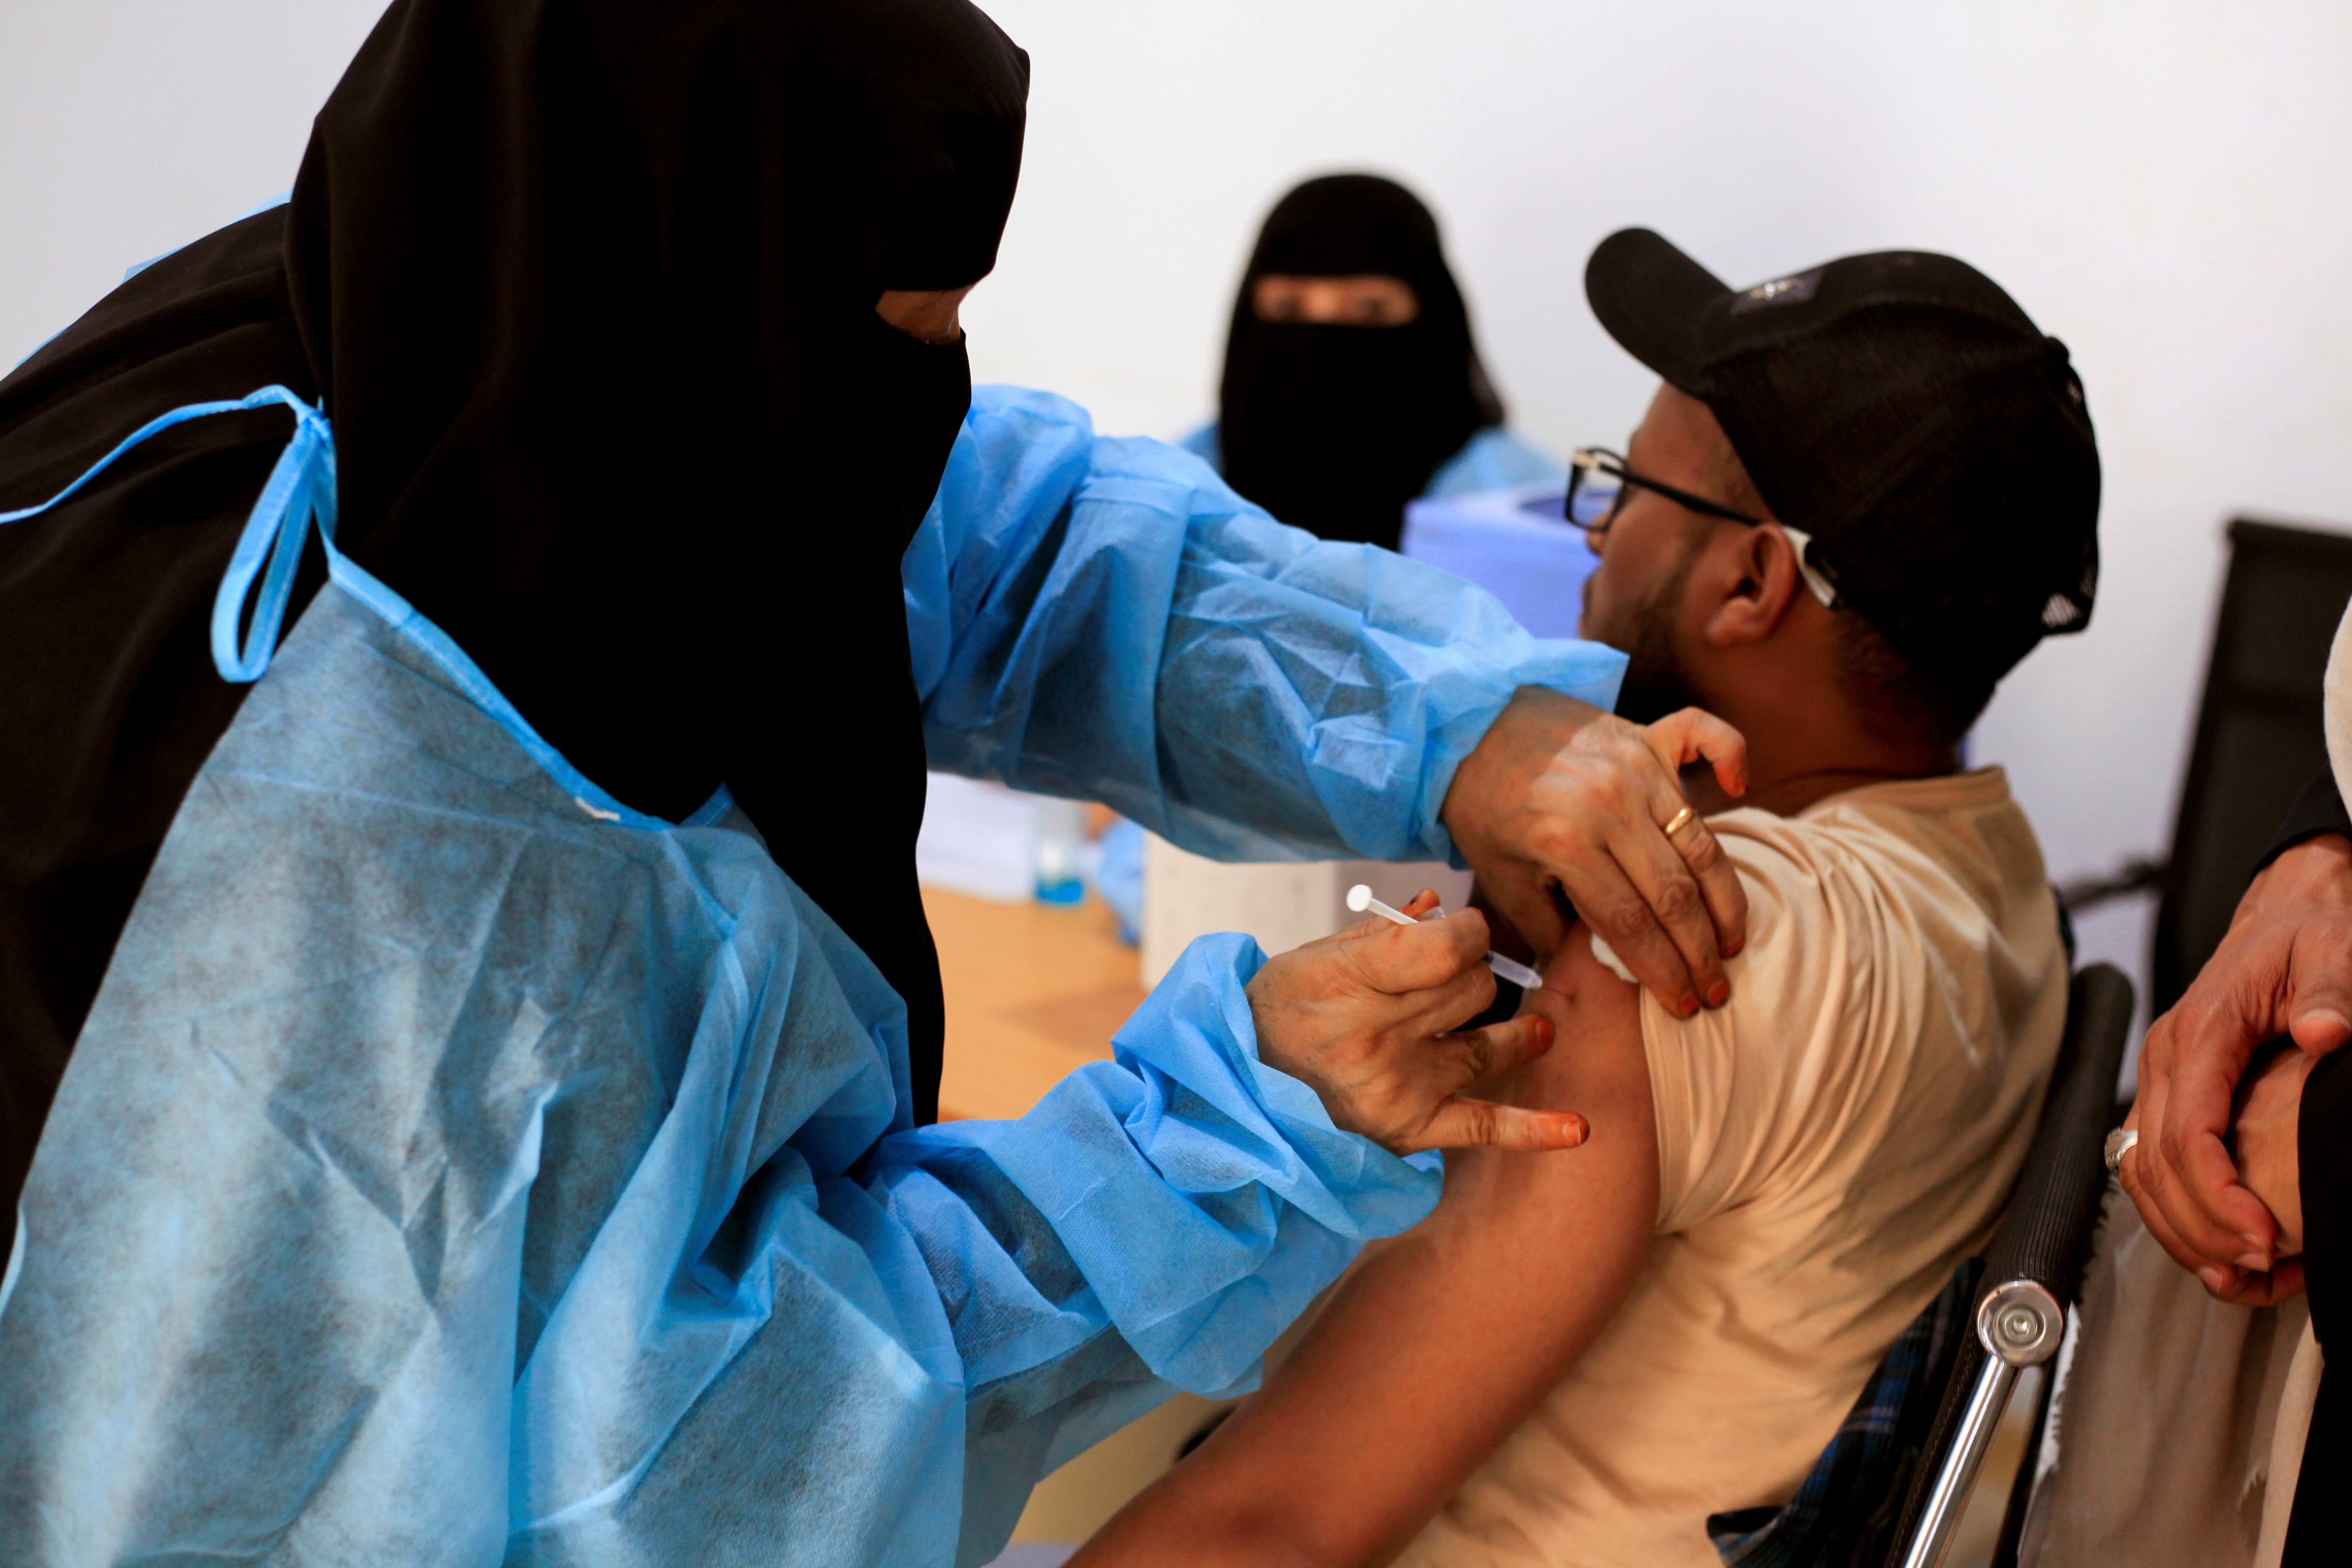 A man receives the AstraZeneca vaccine against the coronavirus disease (COVID-19), at a medical center in Taiz, Yemen April 23, 2021. REUTERS/Anees Mahyoub